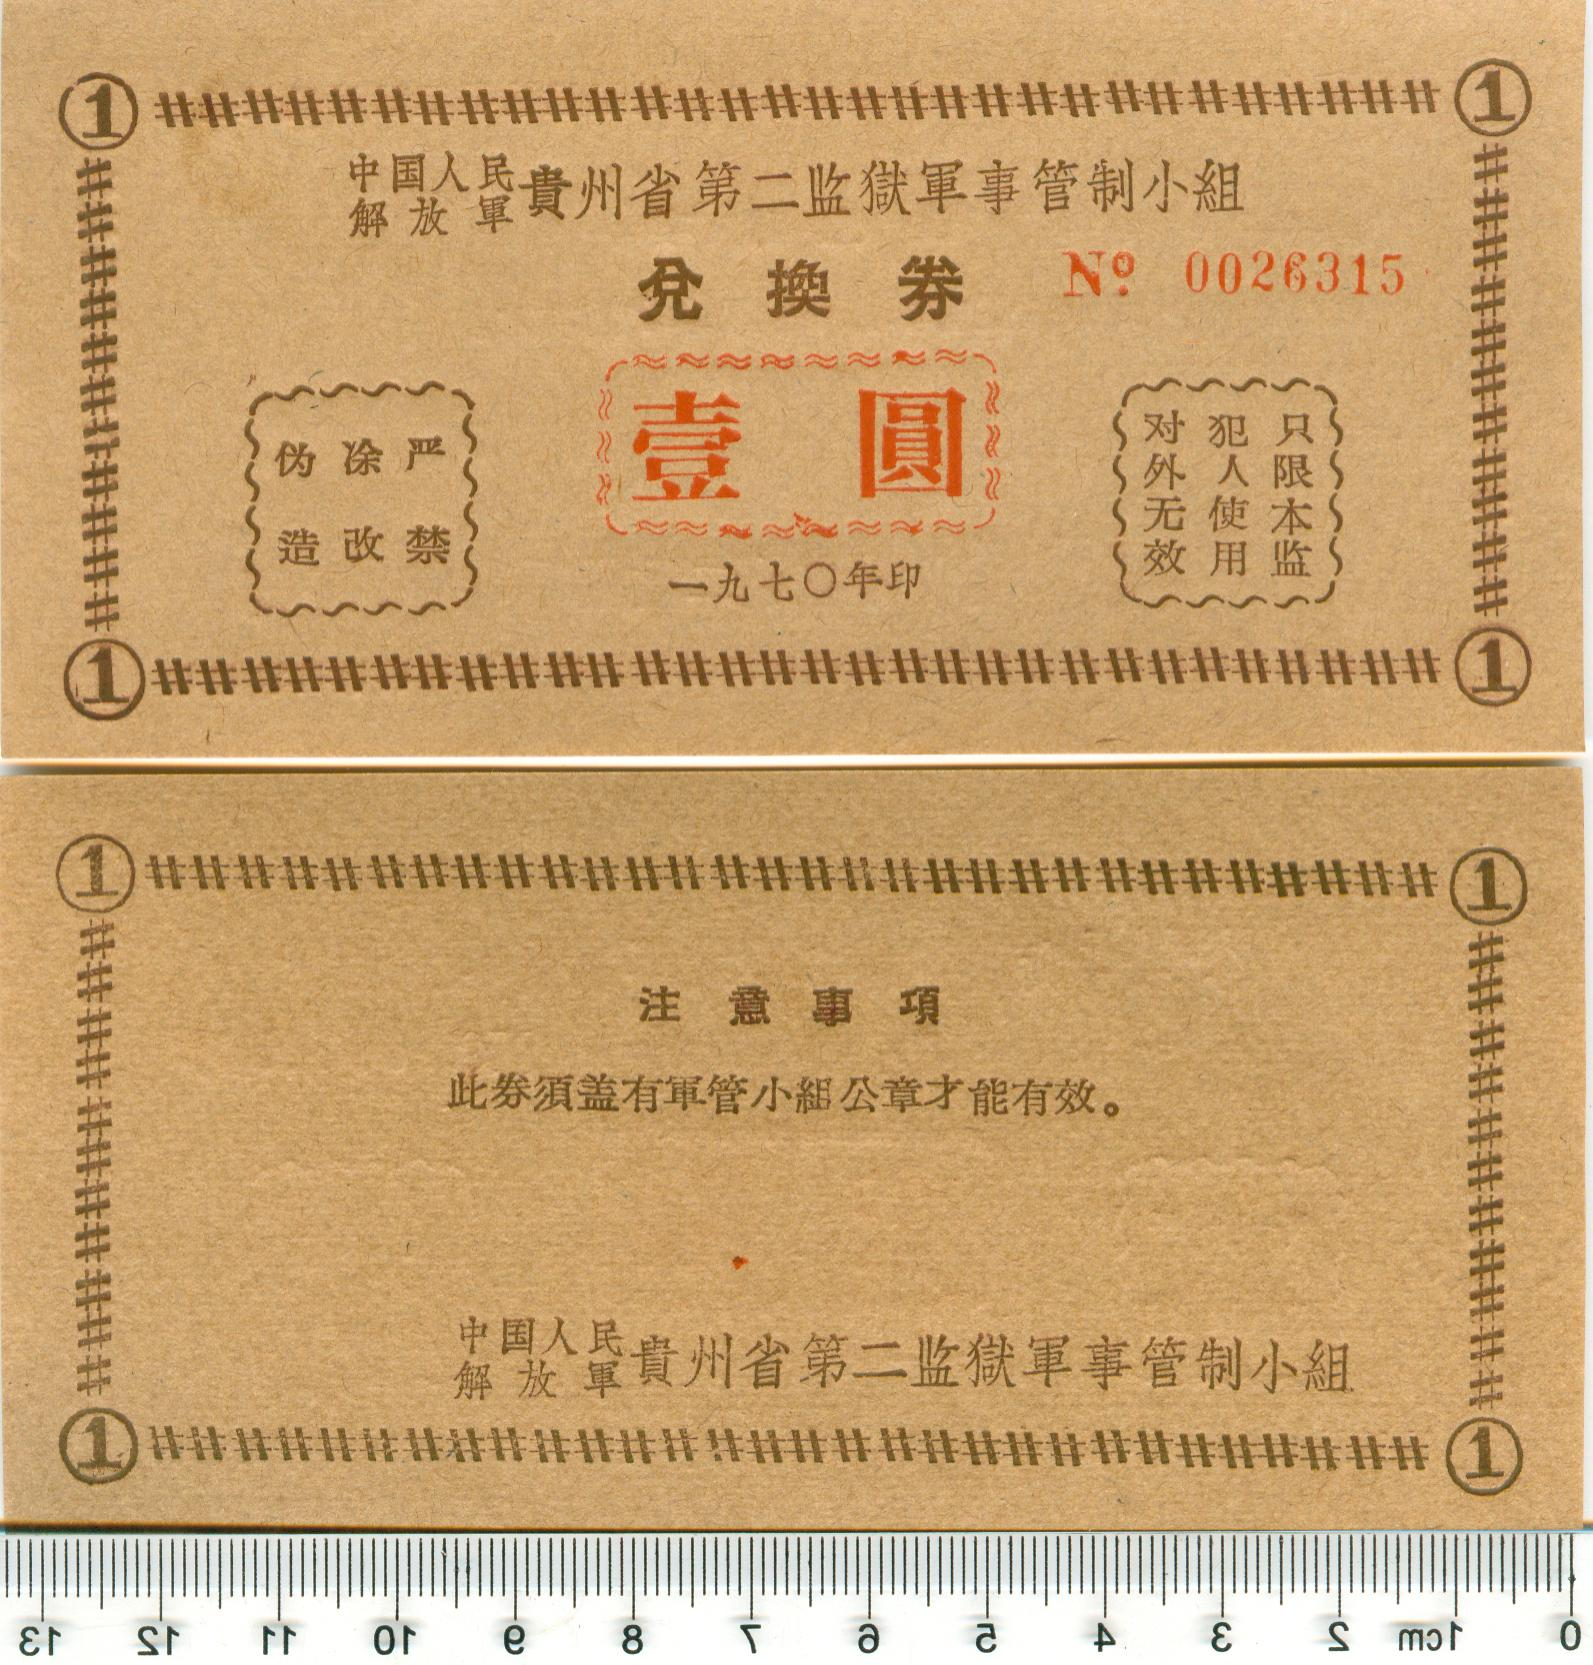 H4160, China Prison Ration Coupon (Banknote), One Yuan, 1970